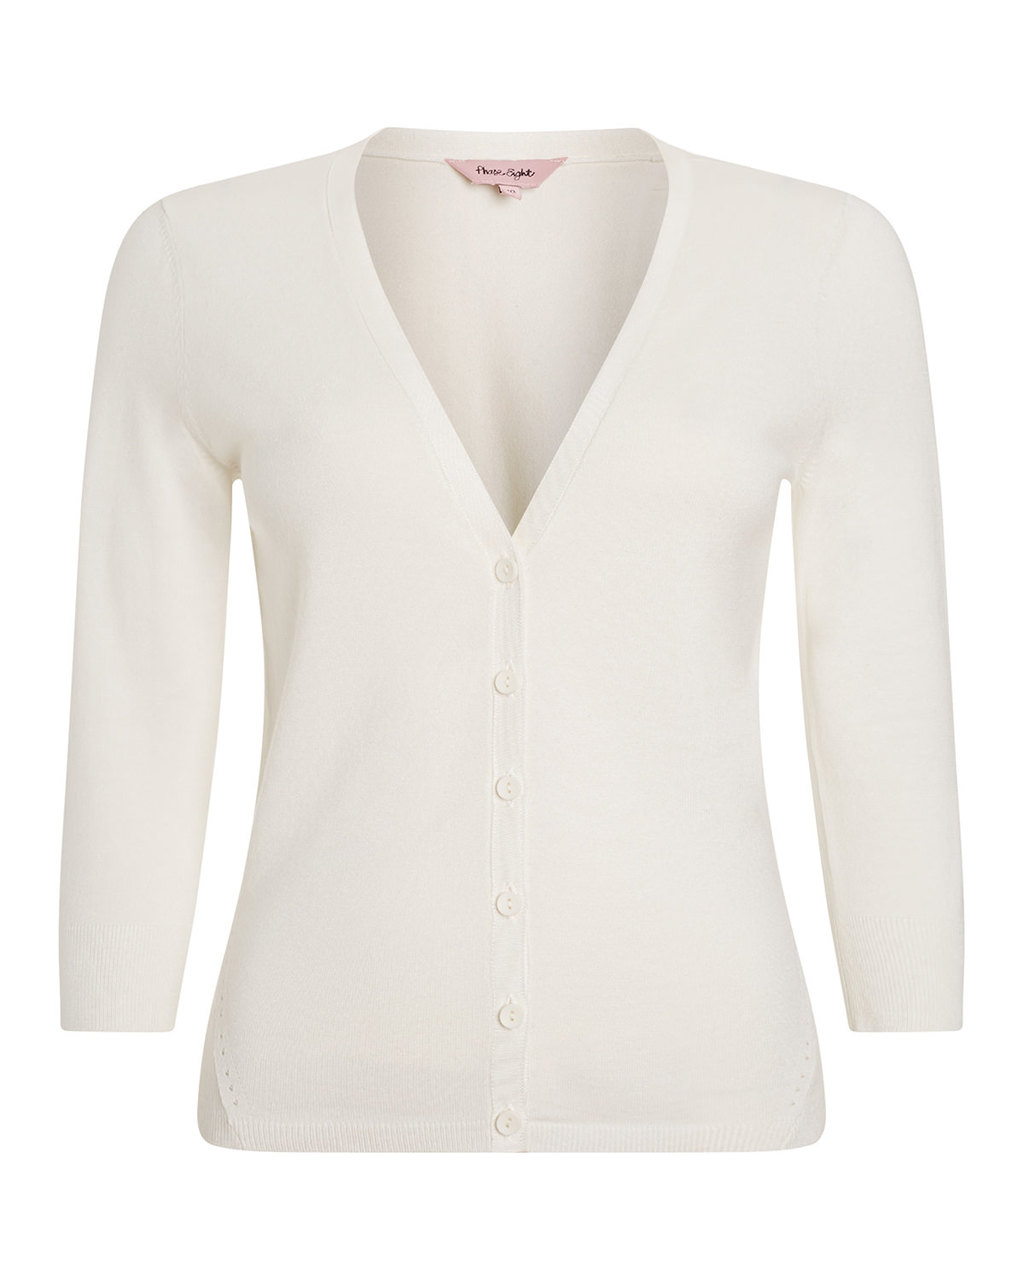 Elin Cardi - neckline: v-neck; pattern: plain; predominant colour: ivory/cream; occasions: casual, creative work; length: standard; style: standard; fibres: cotton - mix; fit: slim fit; sleeve length: 3/4 length; sleeve style: standard; texture group: knits/crochet; pattern type: knitted - fine stitch; season: a/w 2015; wardrobe: basic